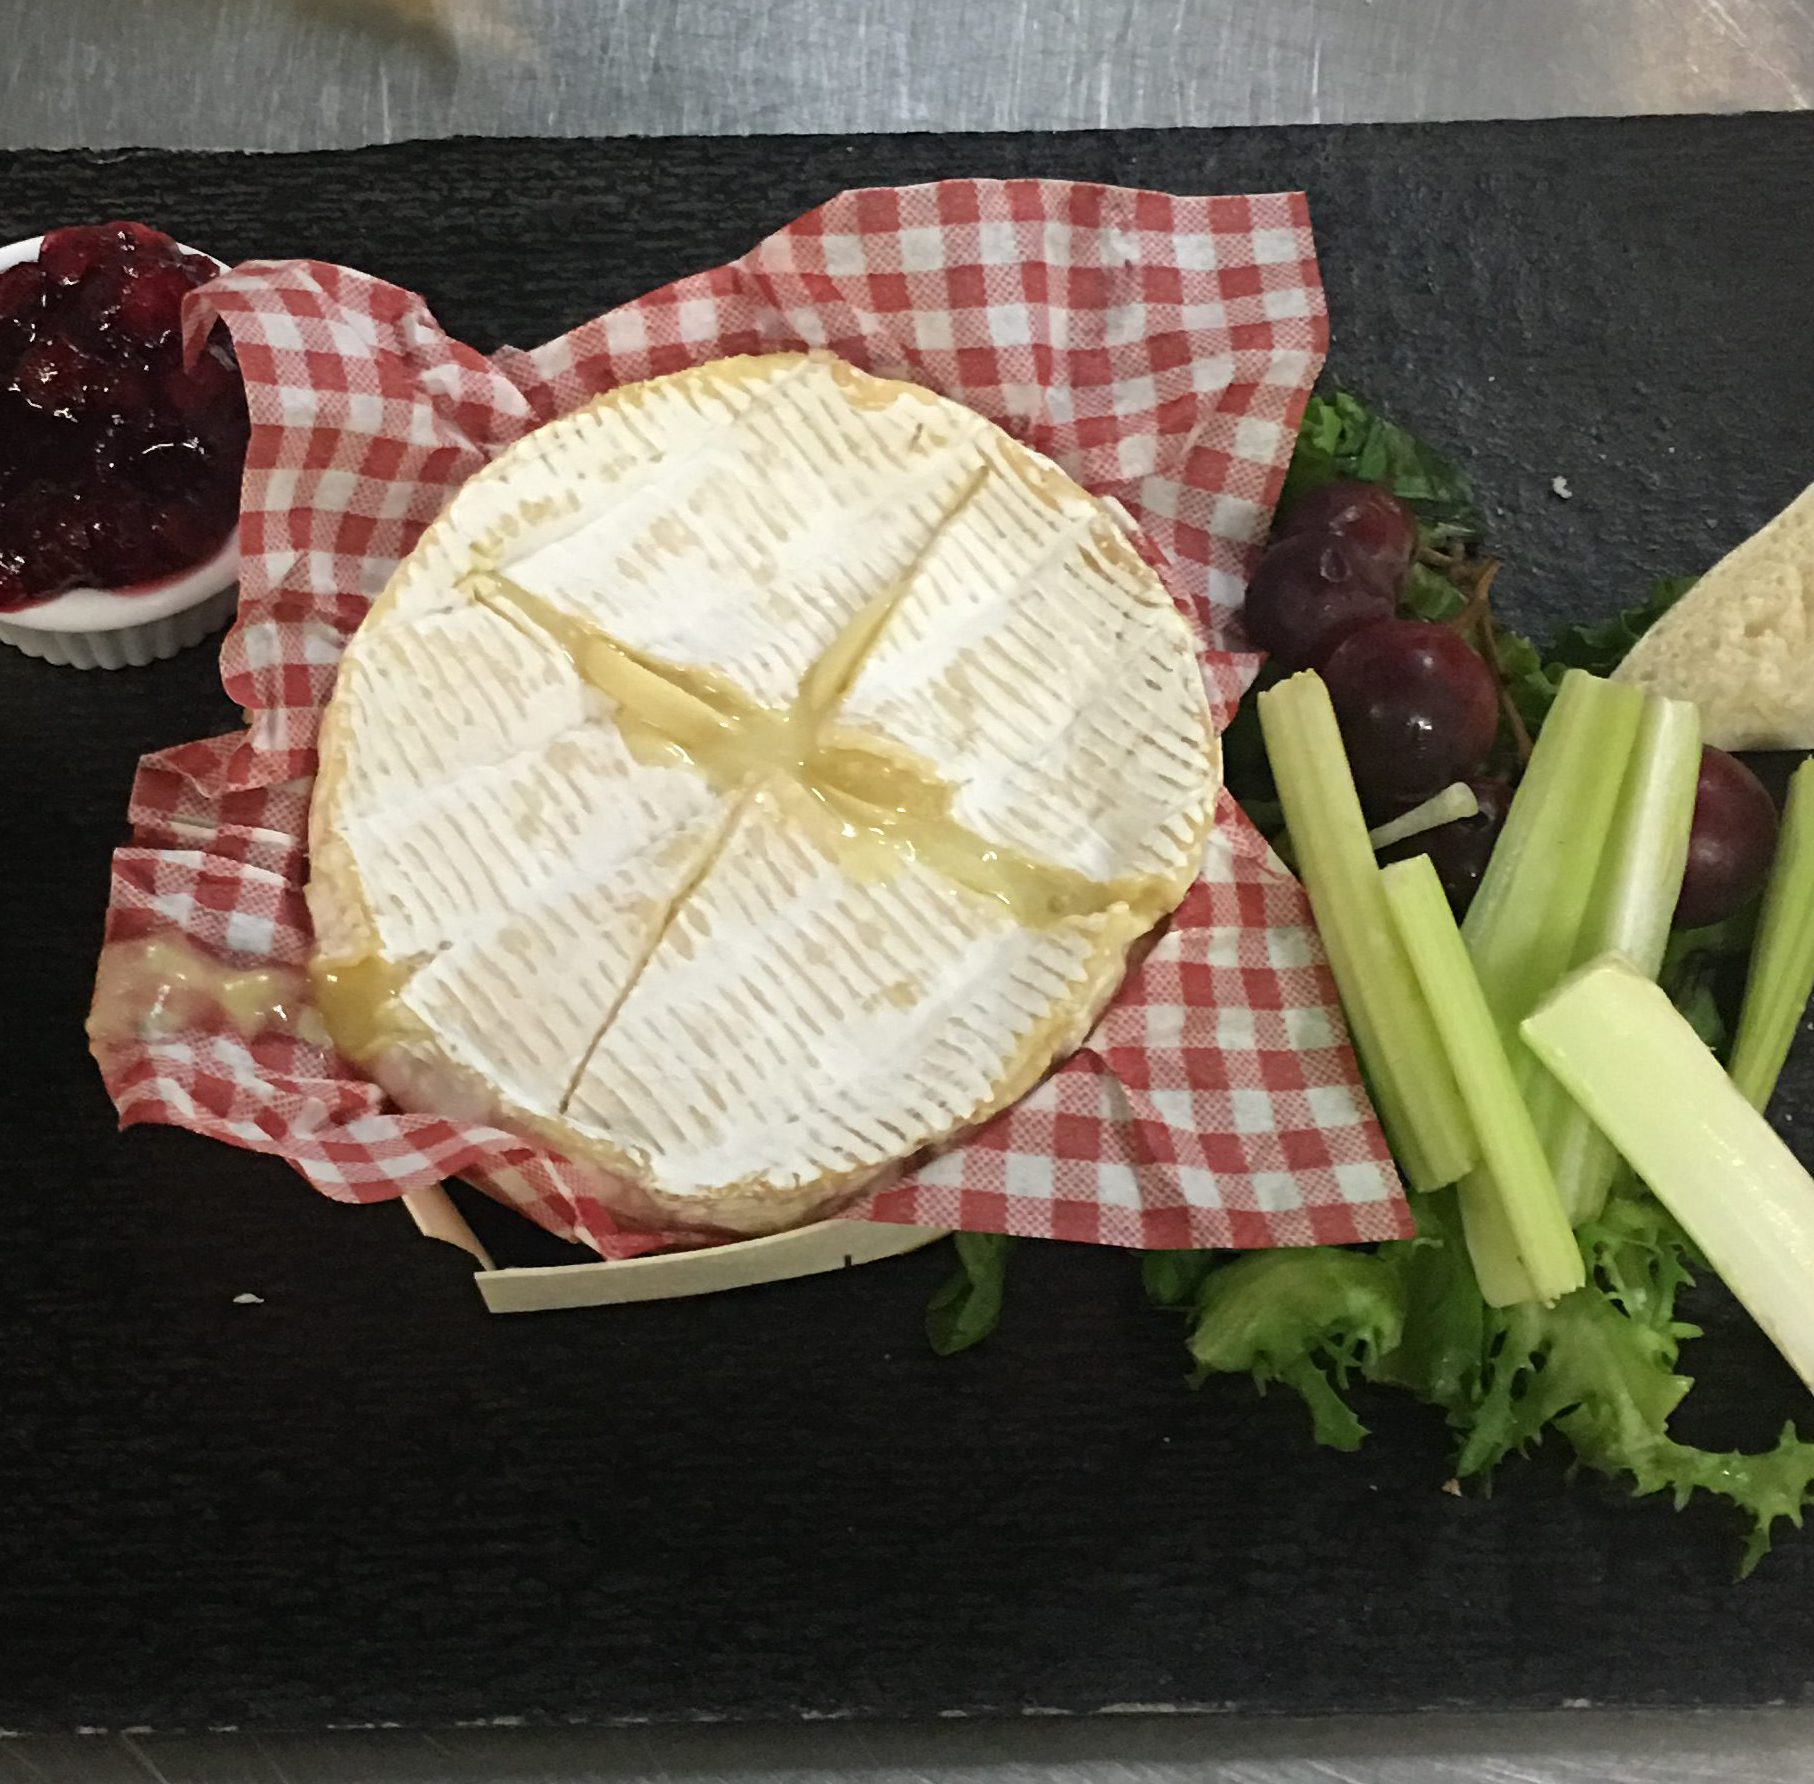 Baked Camembert Sharing Board